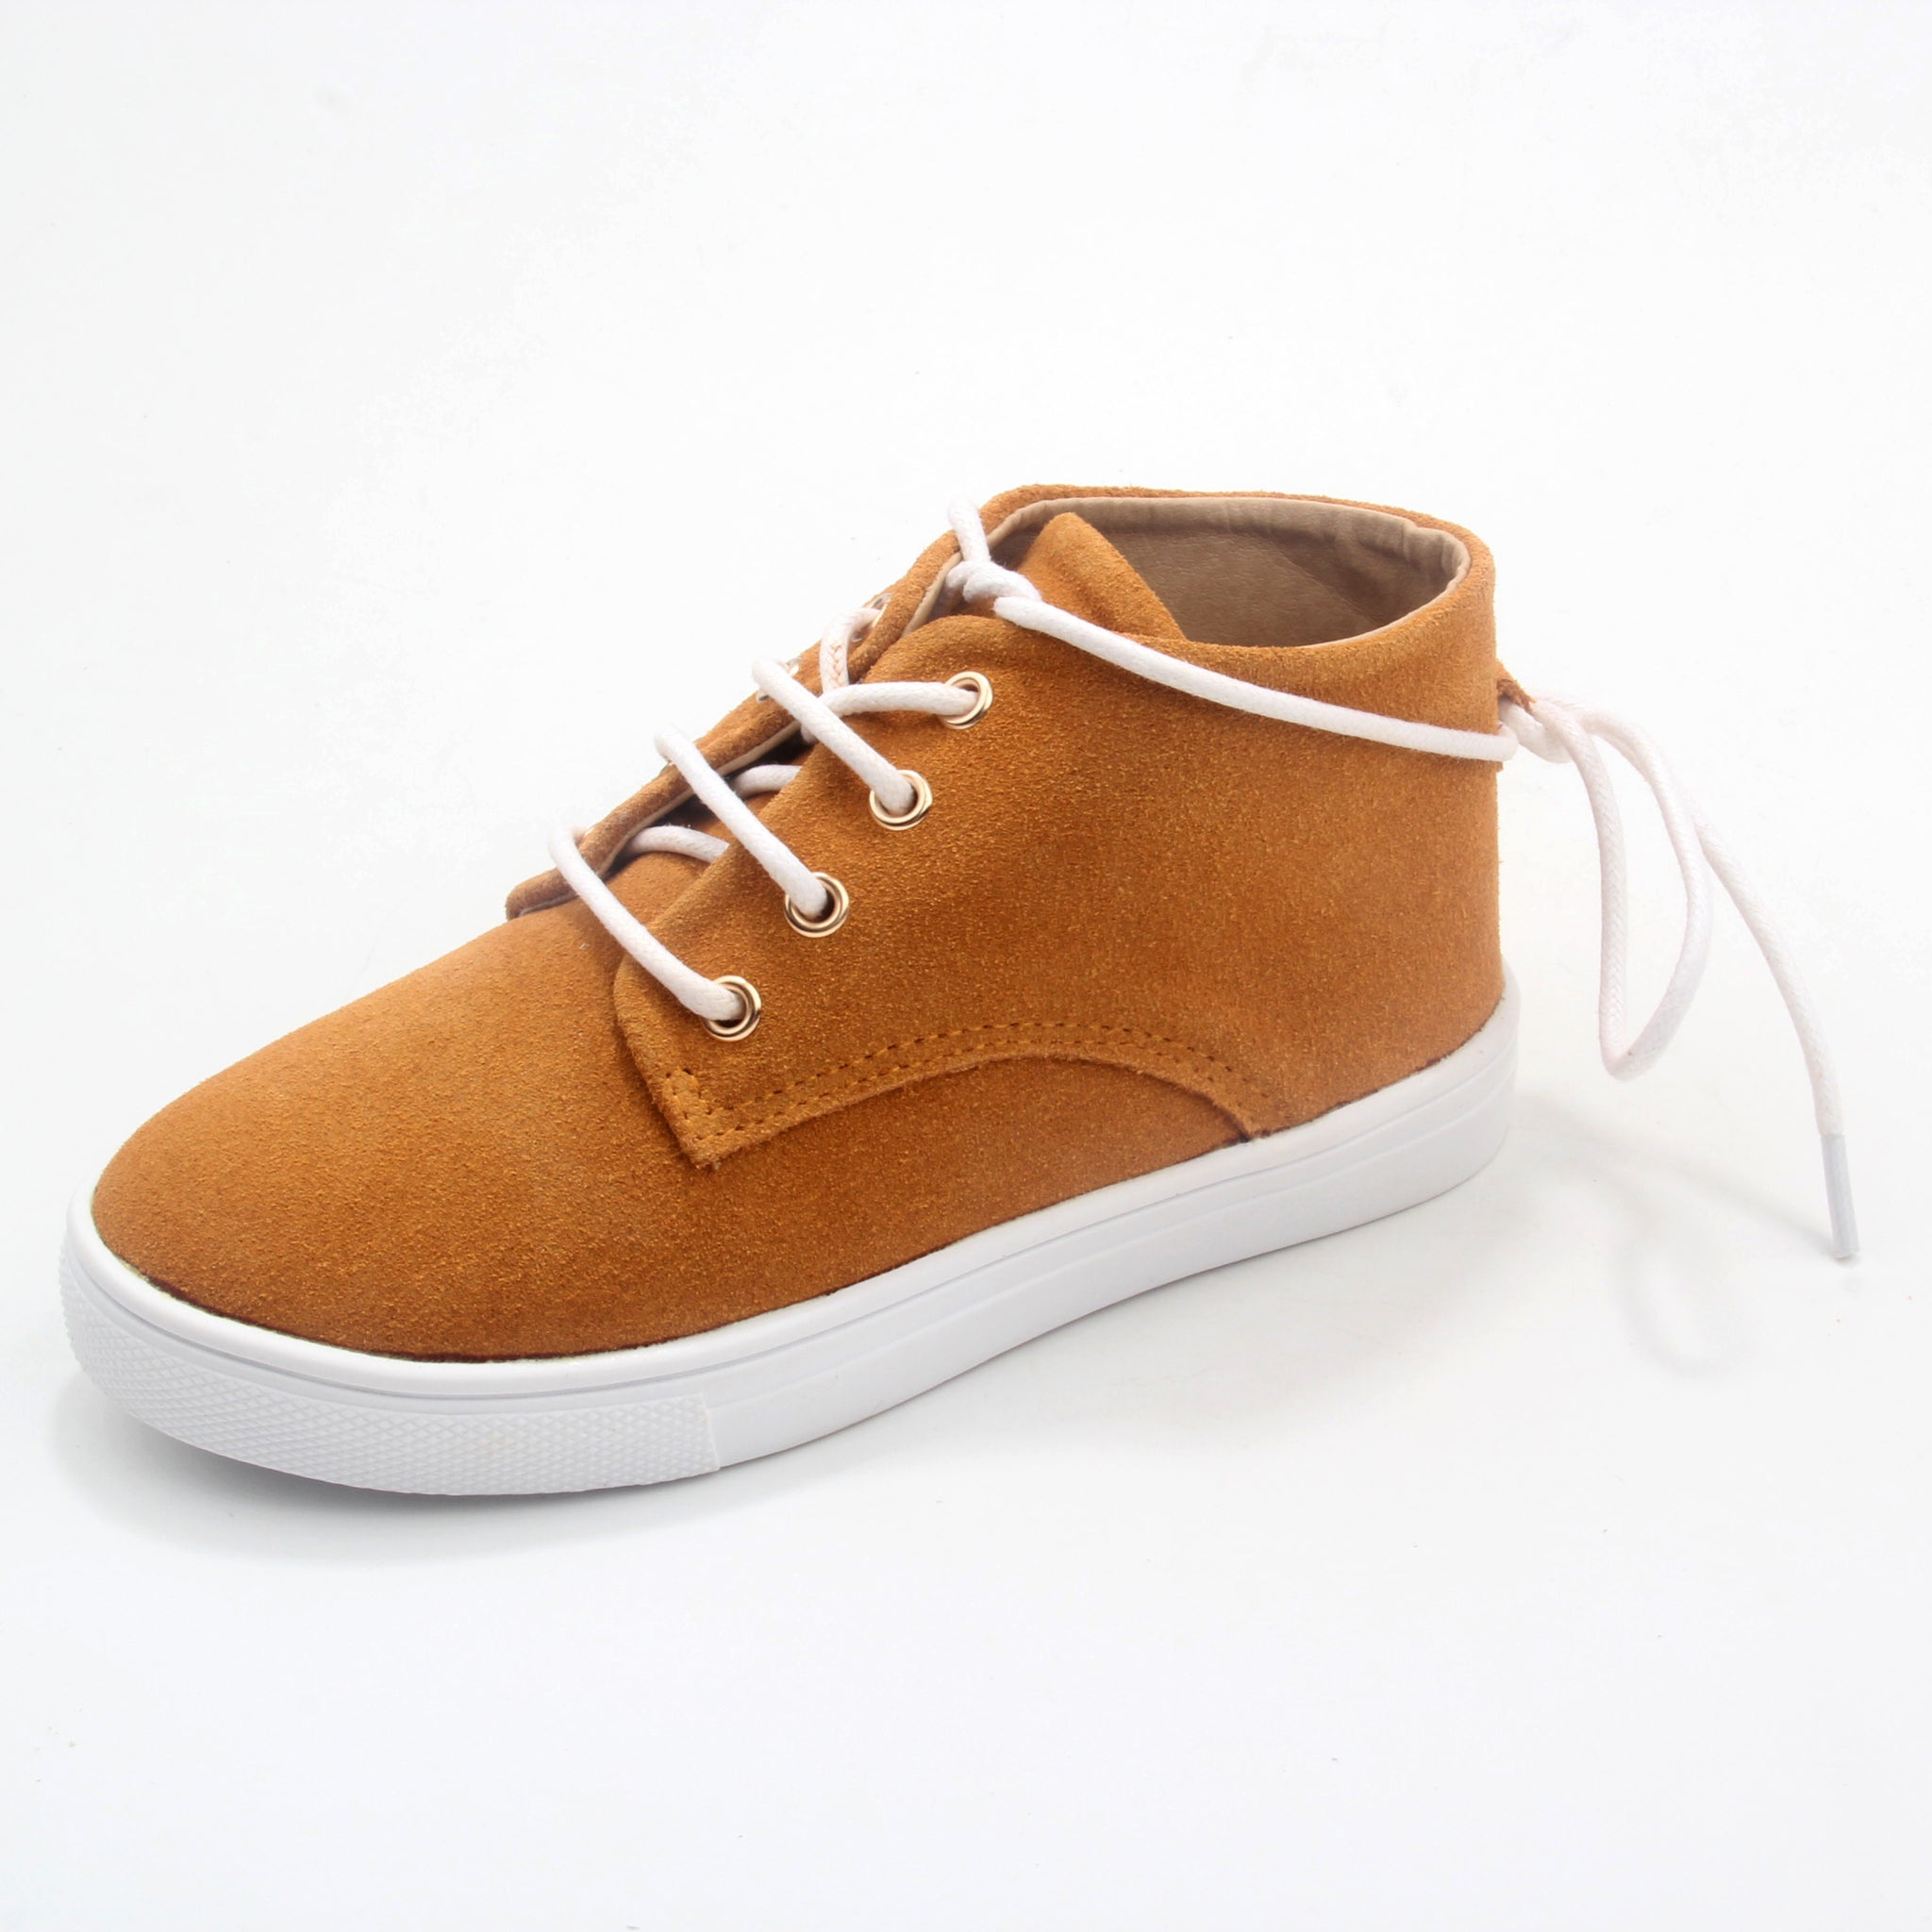 WILD CHASE - Mustard | Gelato Suede Leather Sneaker